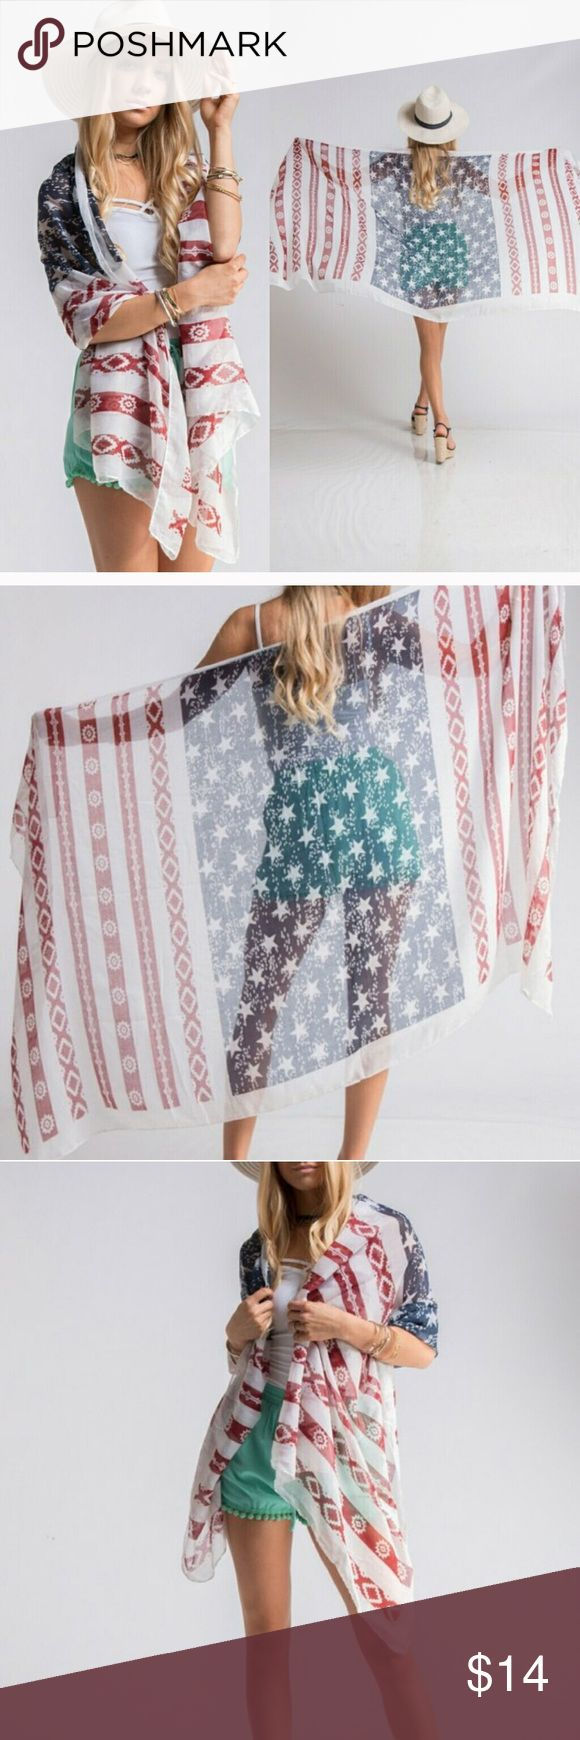 Aztec American Flag scarf/shawl 🇺🇸👙 Adorable Aztec American Flag Shawl. Great for the 4th of July! New in package! 😊🇺🇸 Accessories Scarves & Wraps